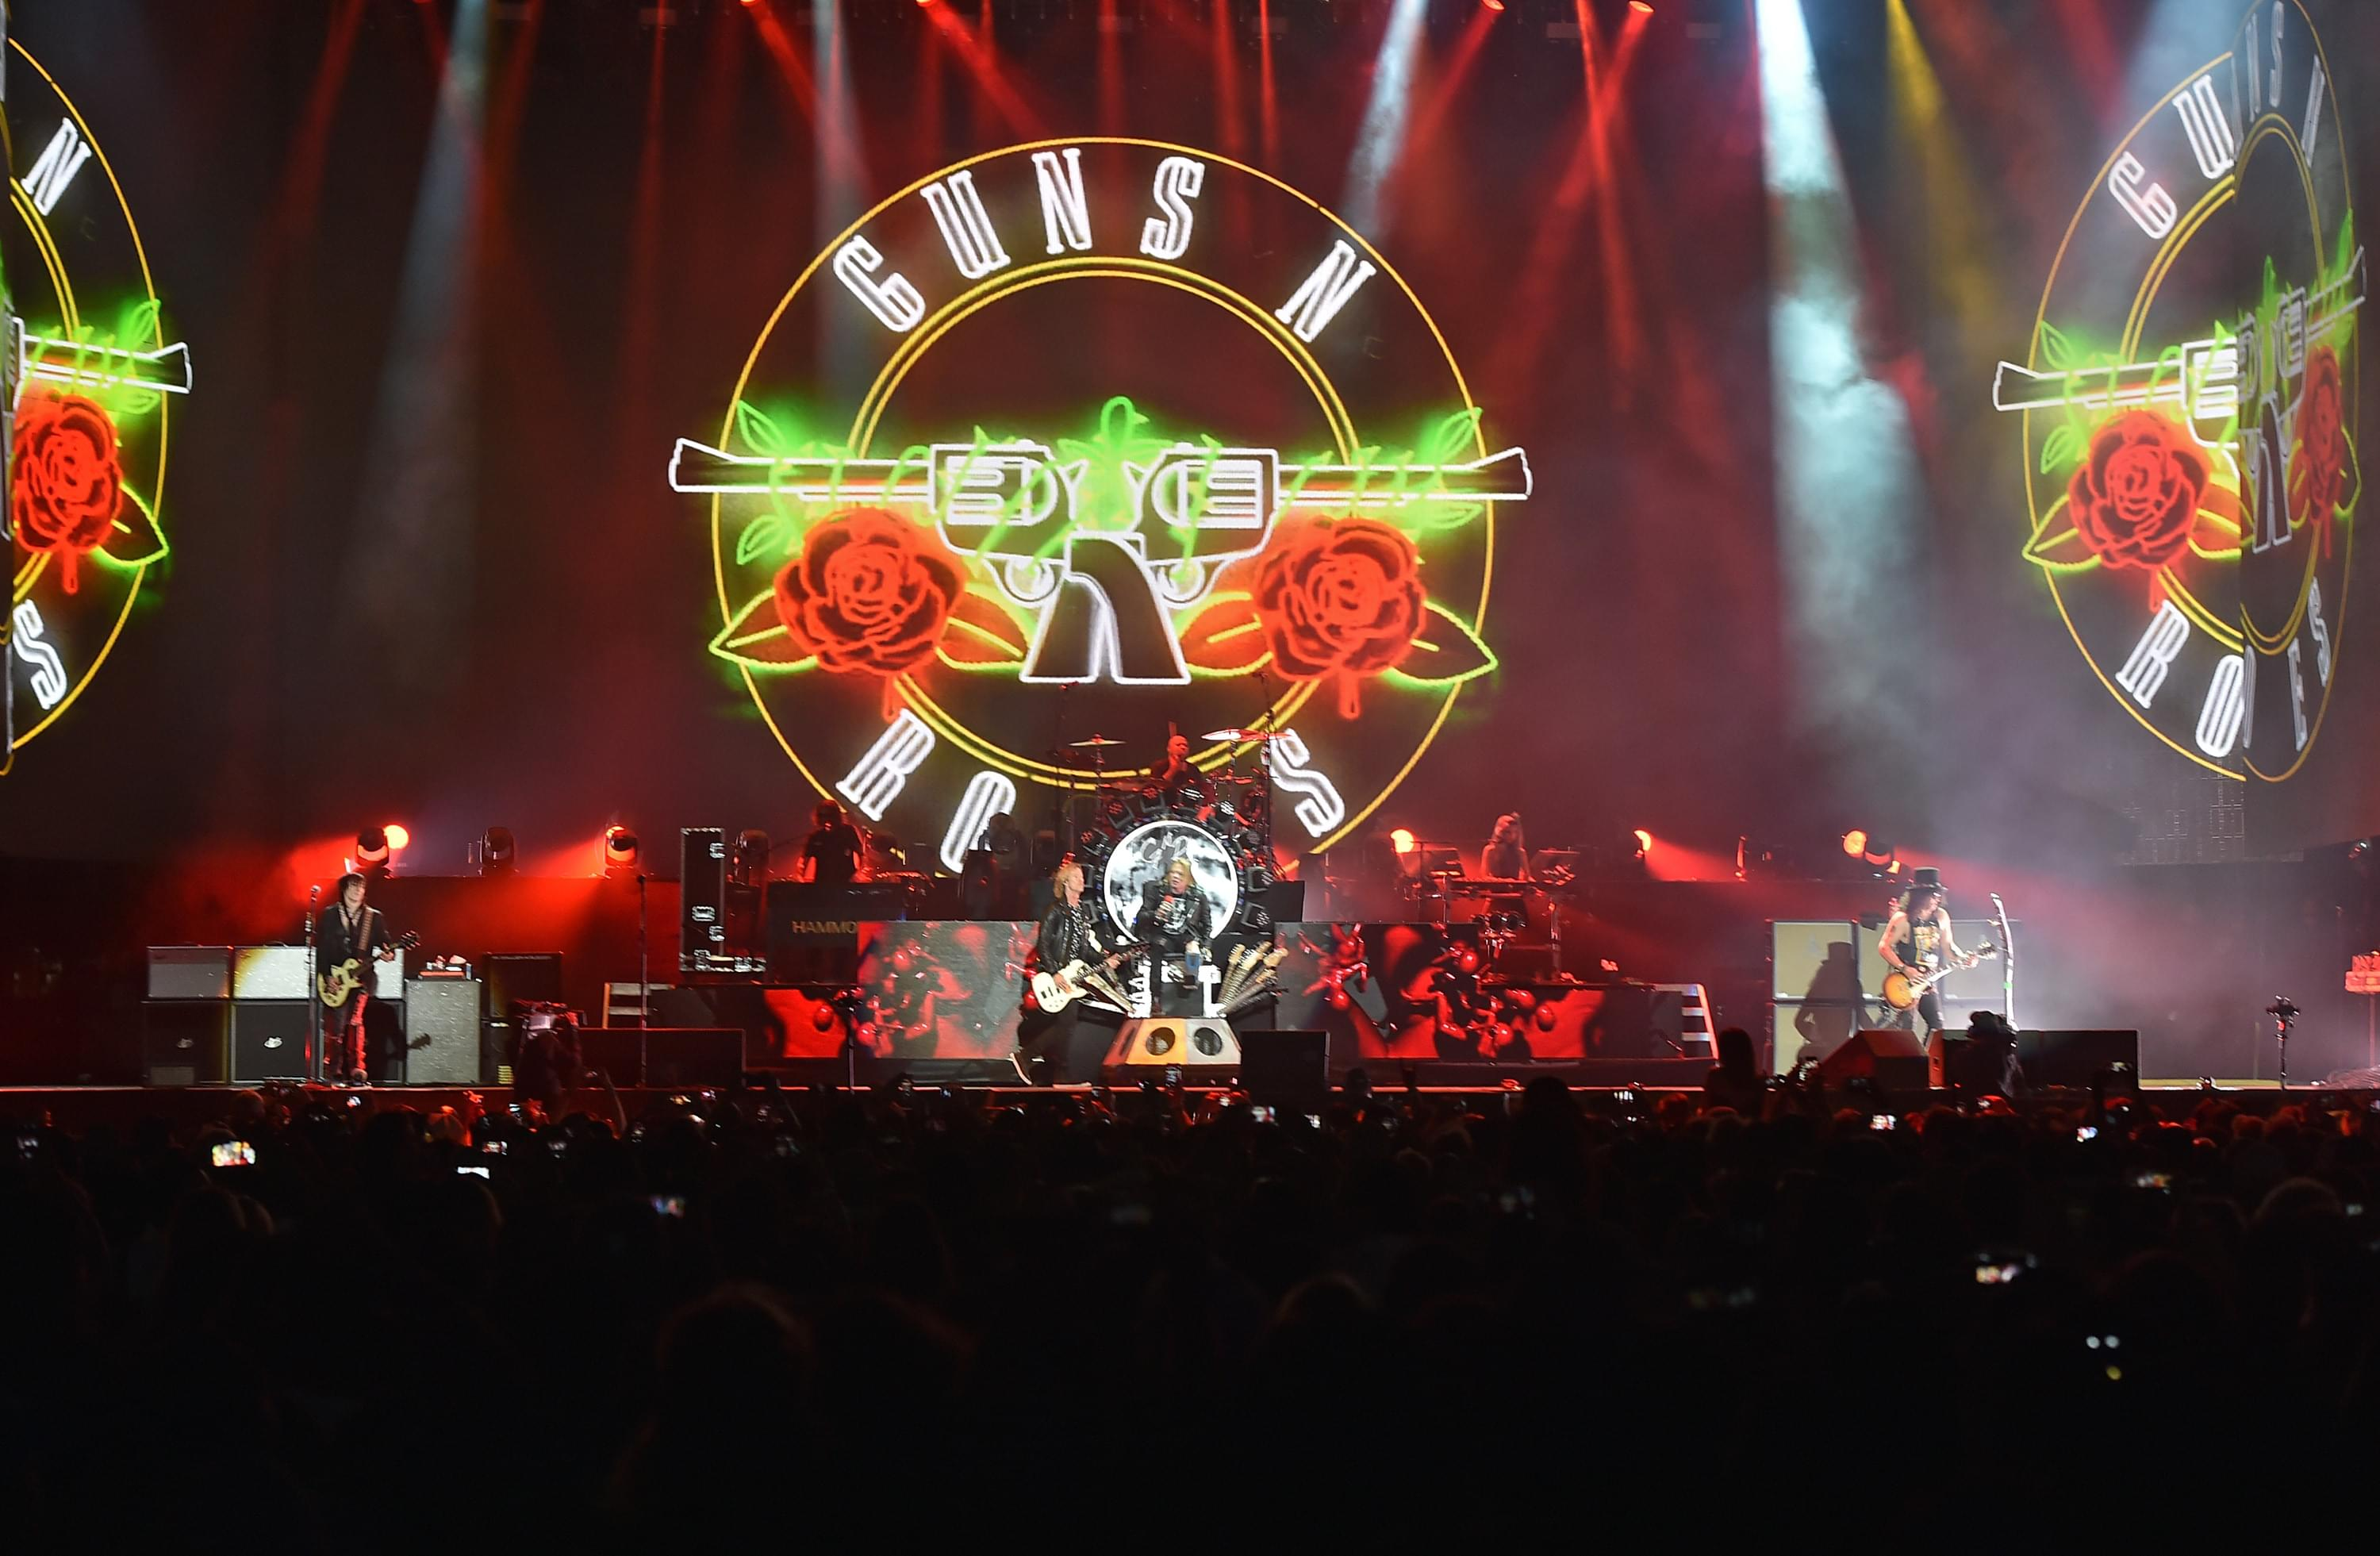 Guns N' Roses' 'Greatest Hits' album making vinyl debut next month